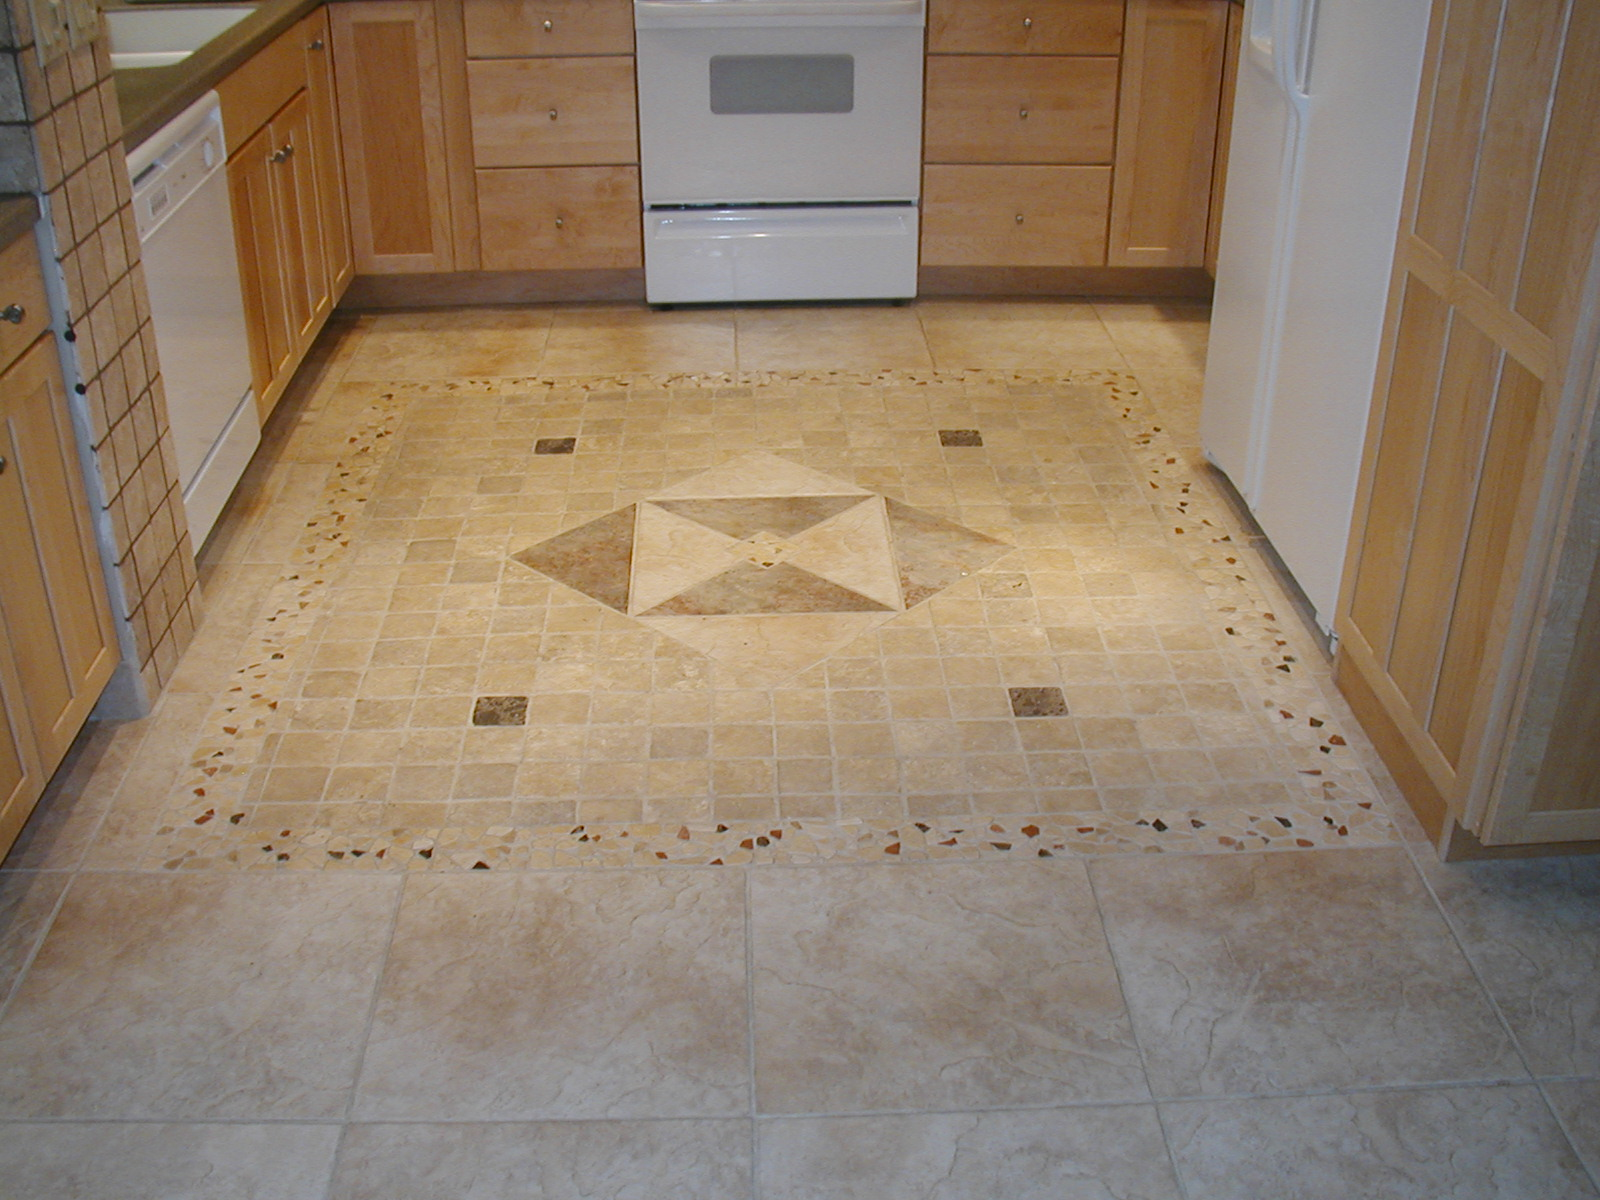 Foyer Tile Floor Designs : Entryway tile design ideas kvriver